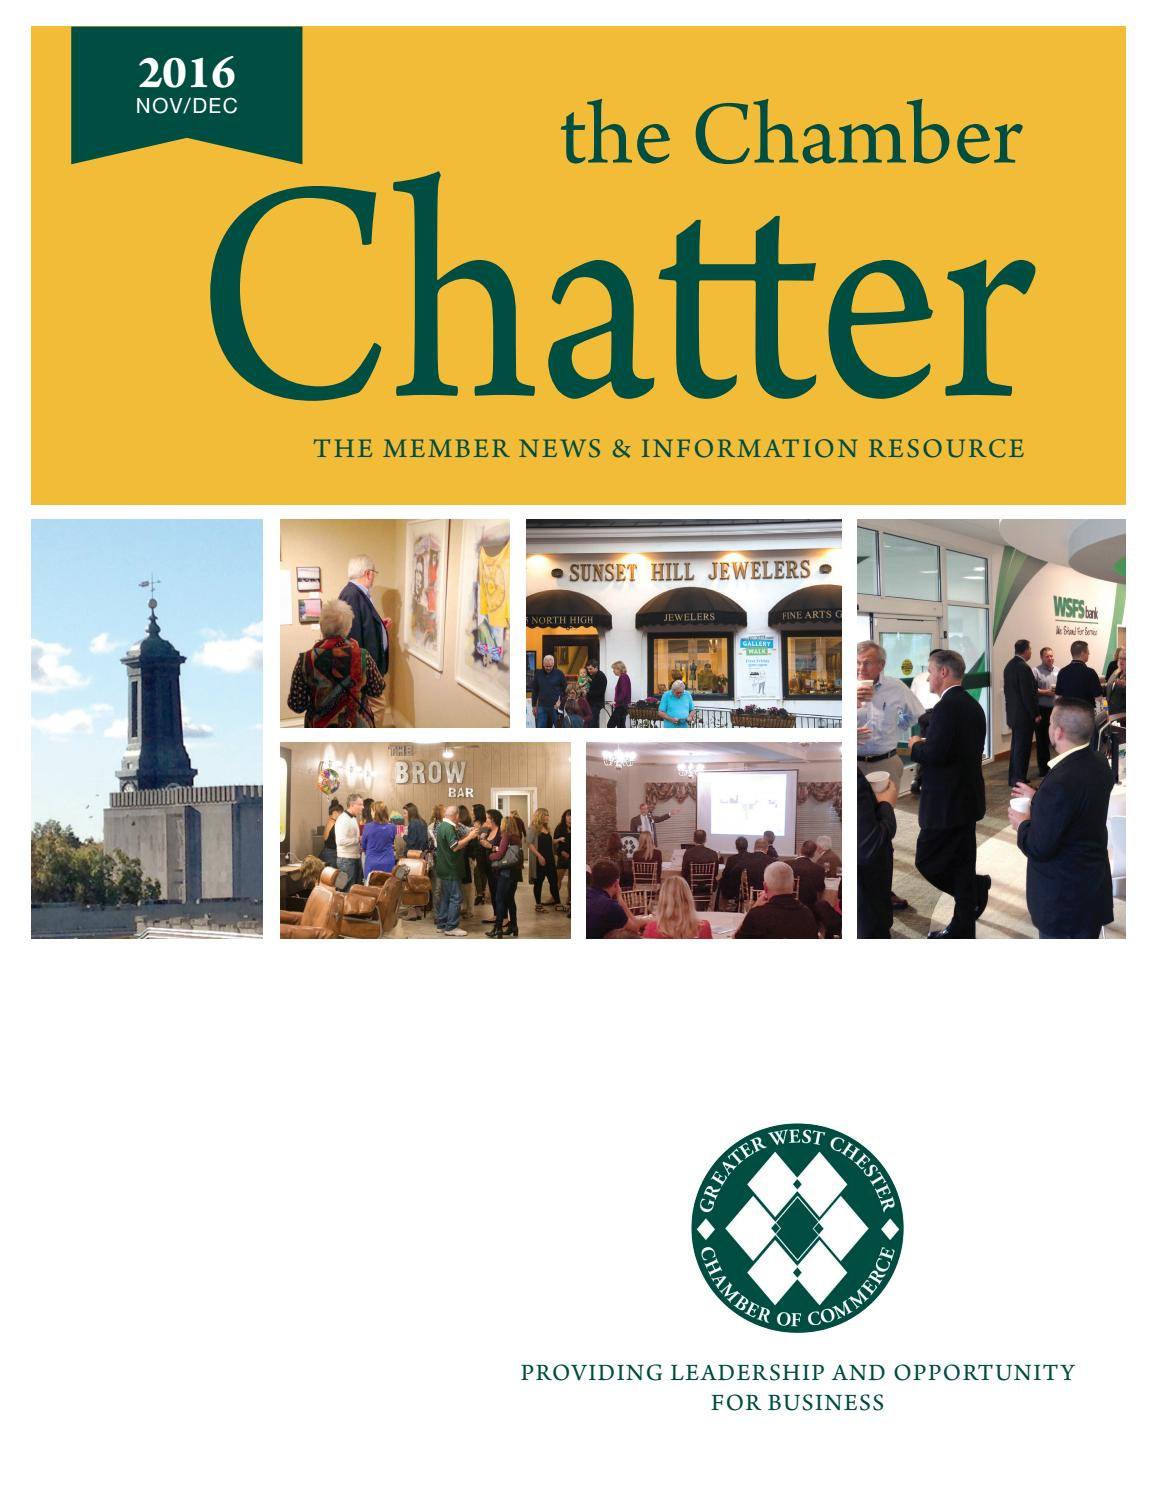 chamber chatter nov dec 2016 by greater west chester chamber of commerce issuu. Black Bedroom Furniture Sets. Home Design Ideas